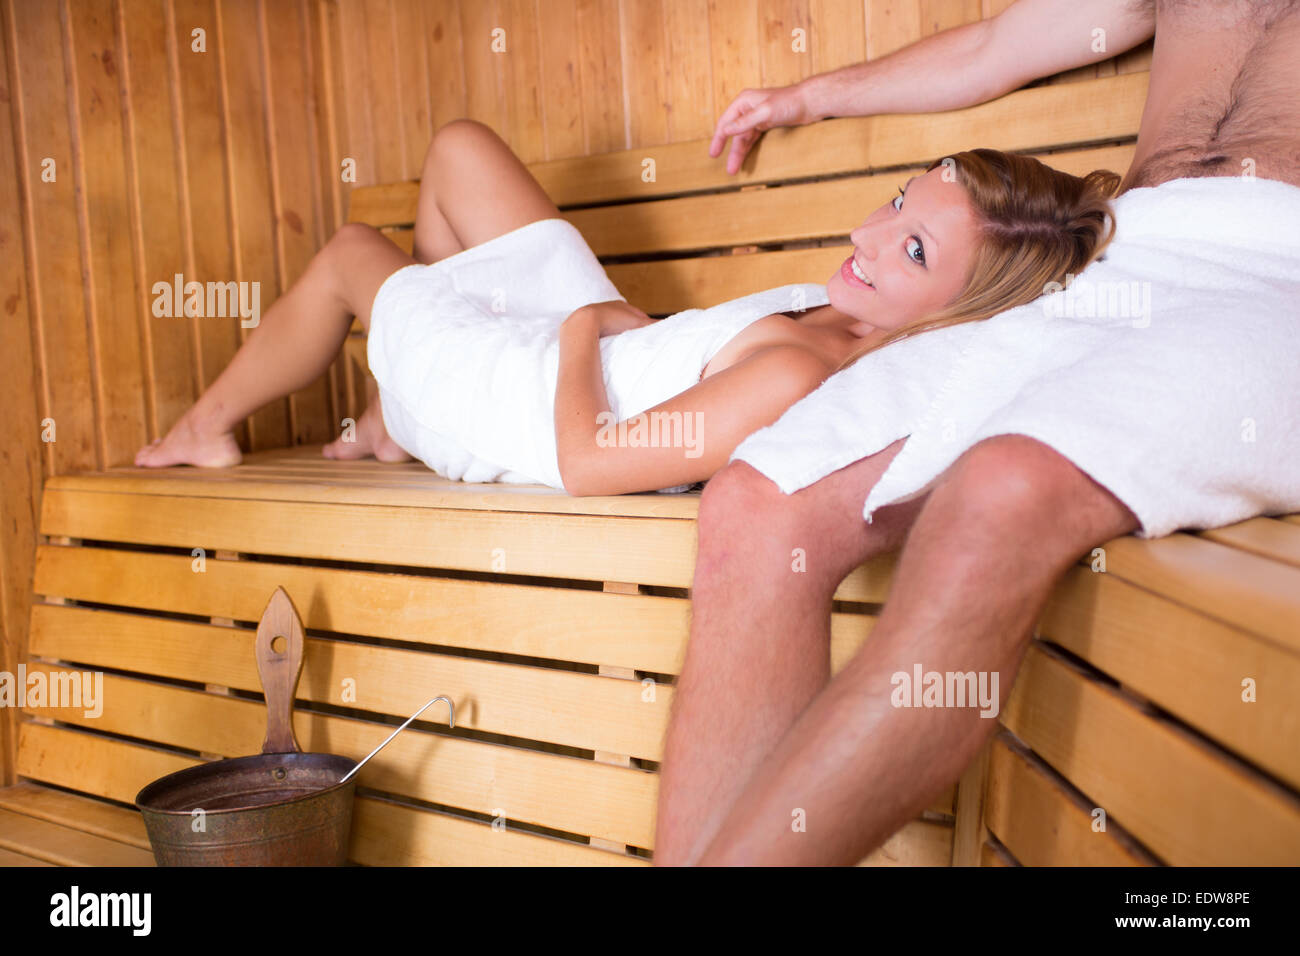 Couple relaxing in traditional wooden sauna. - Stock Image